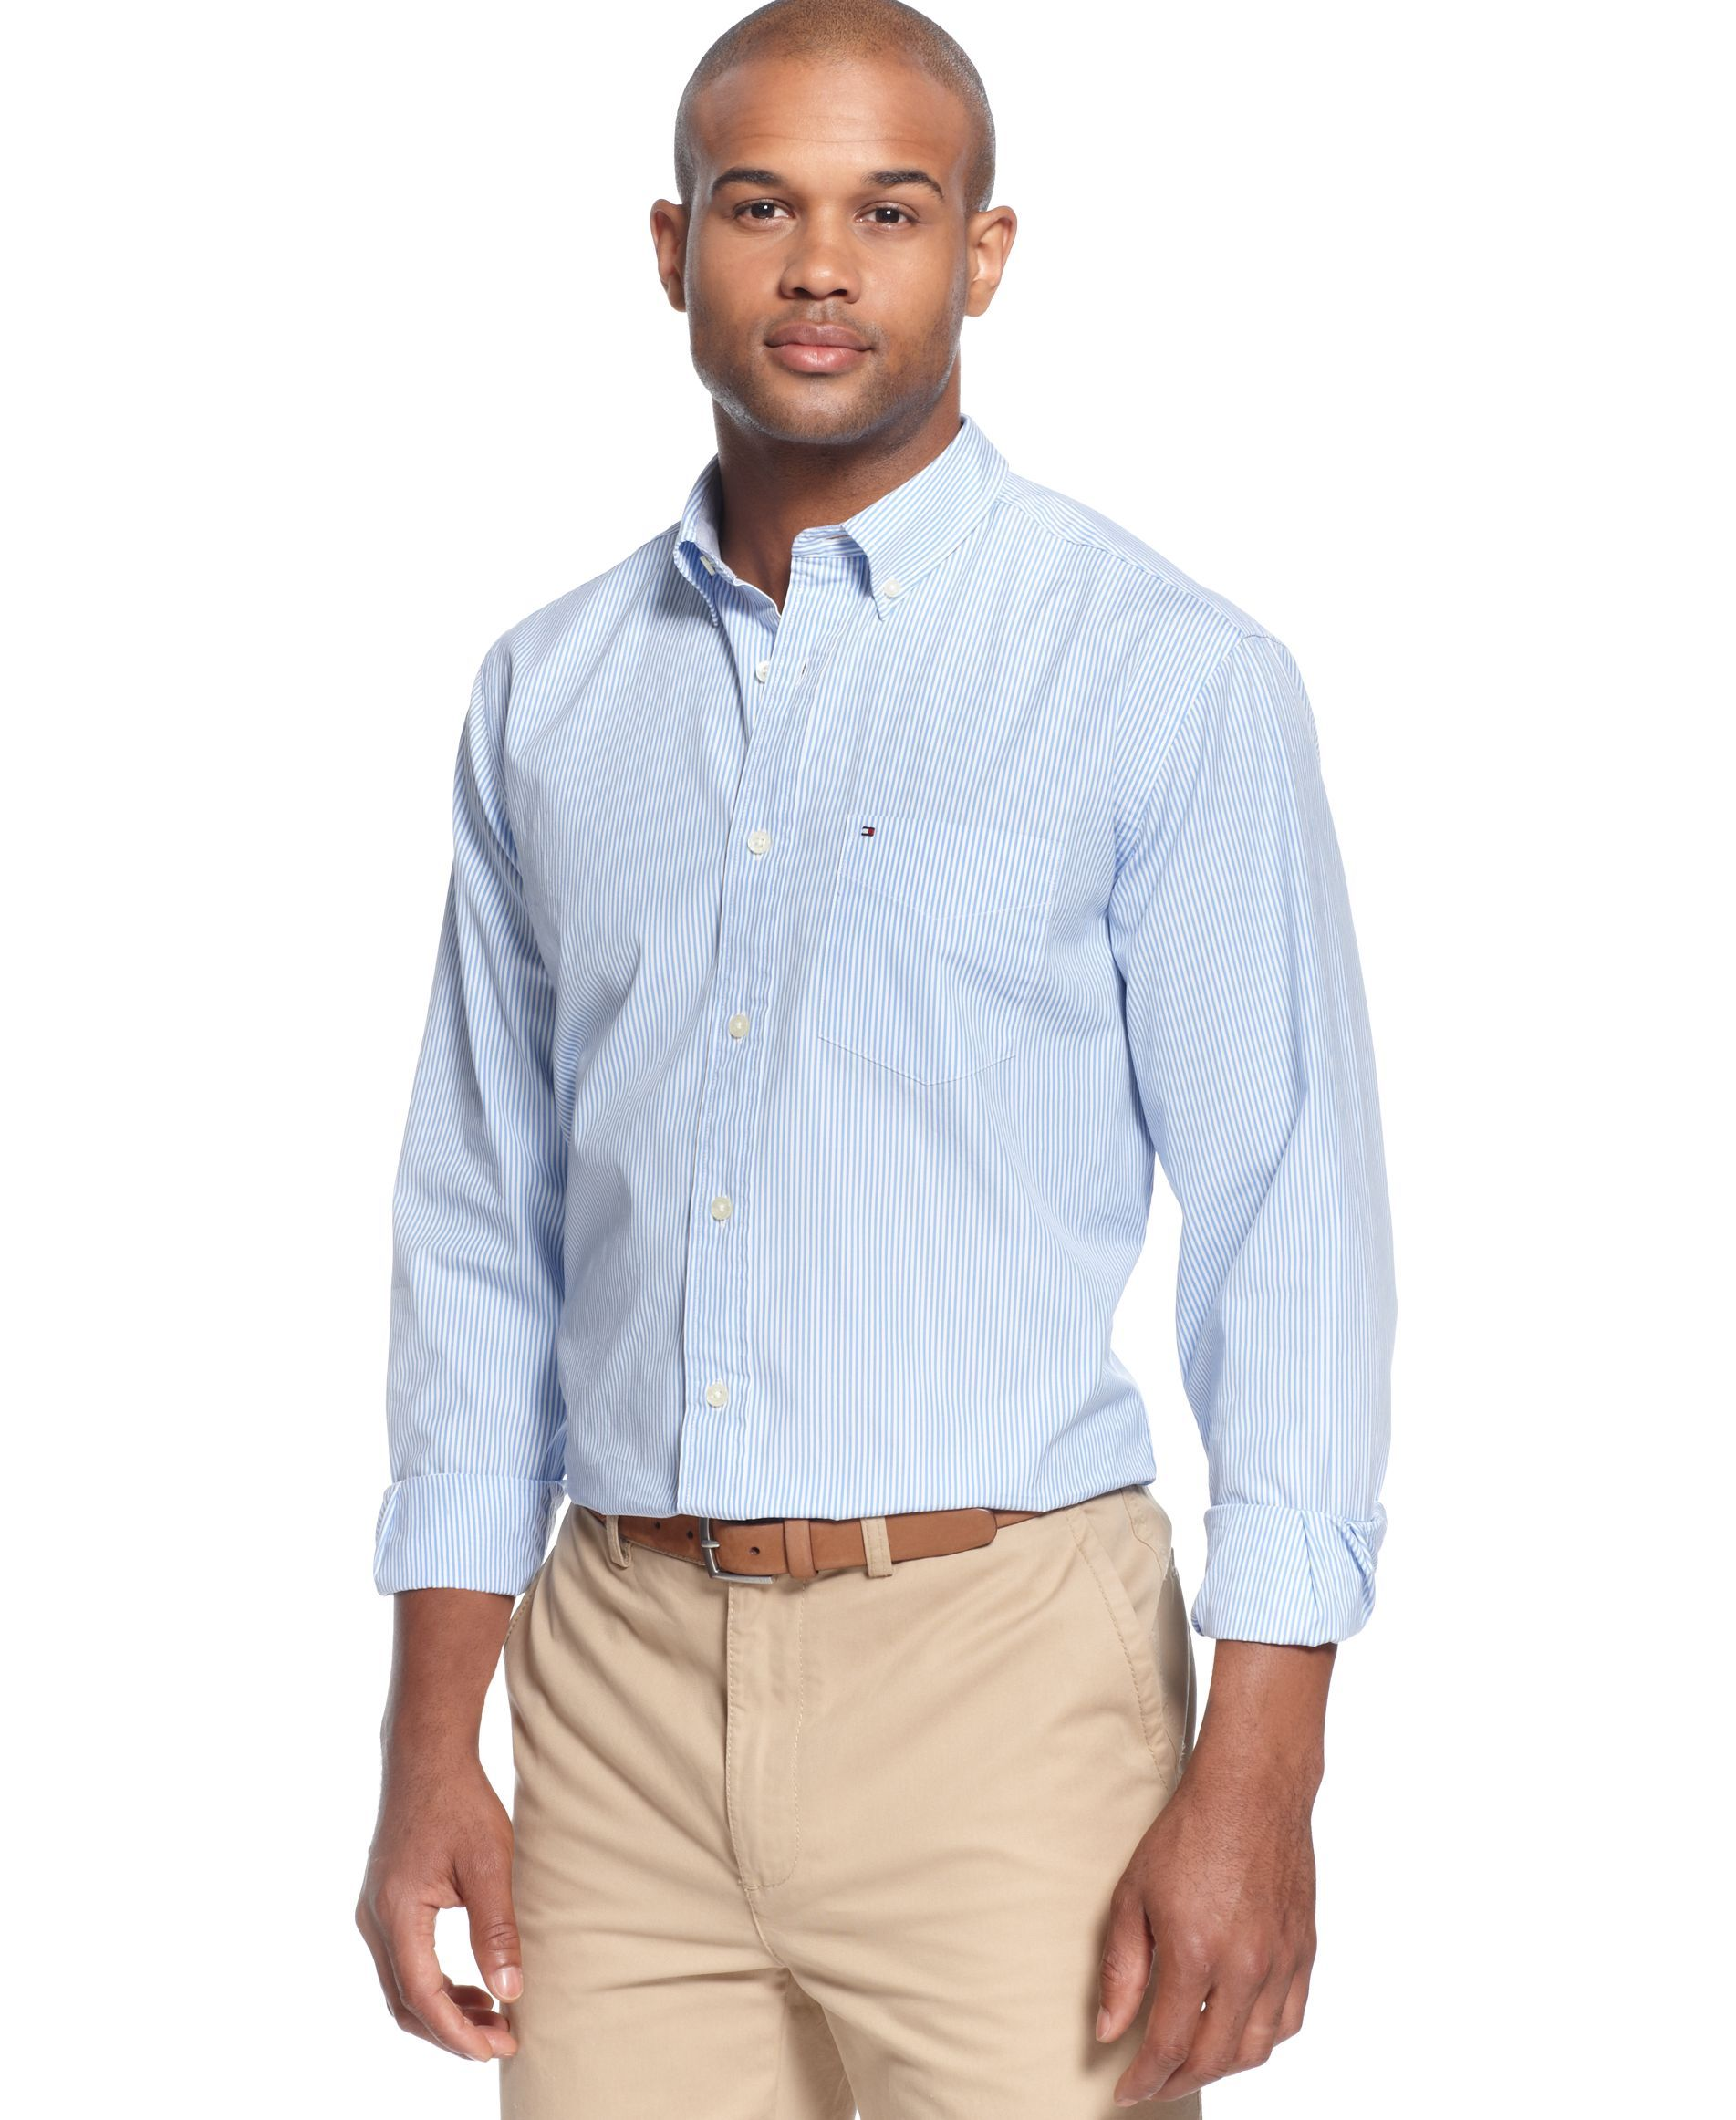 ed8f5592 Tommy Hilfiger Fitzgerald Striped Shirt | Products | Shirts, Mens ...